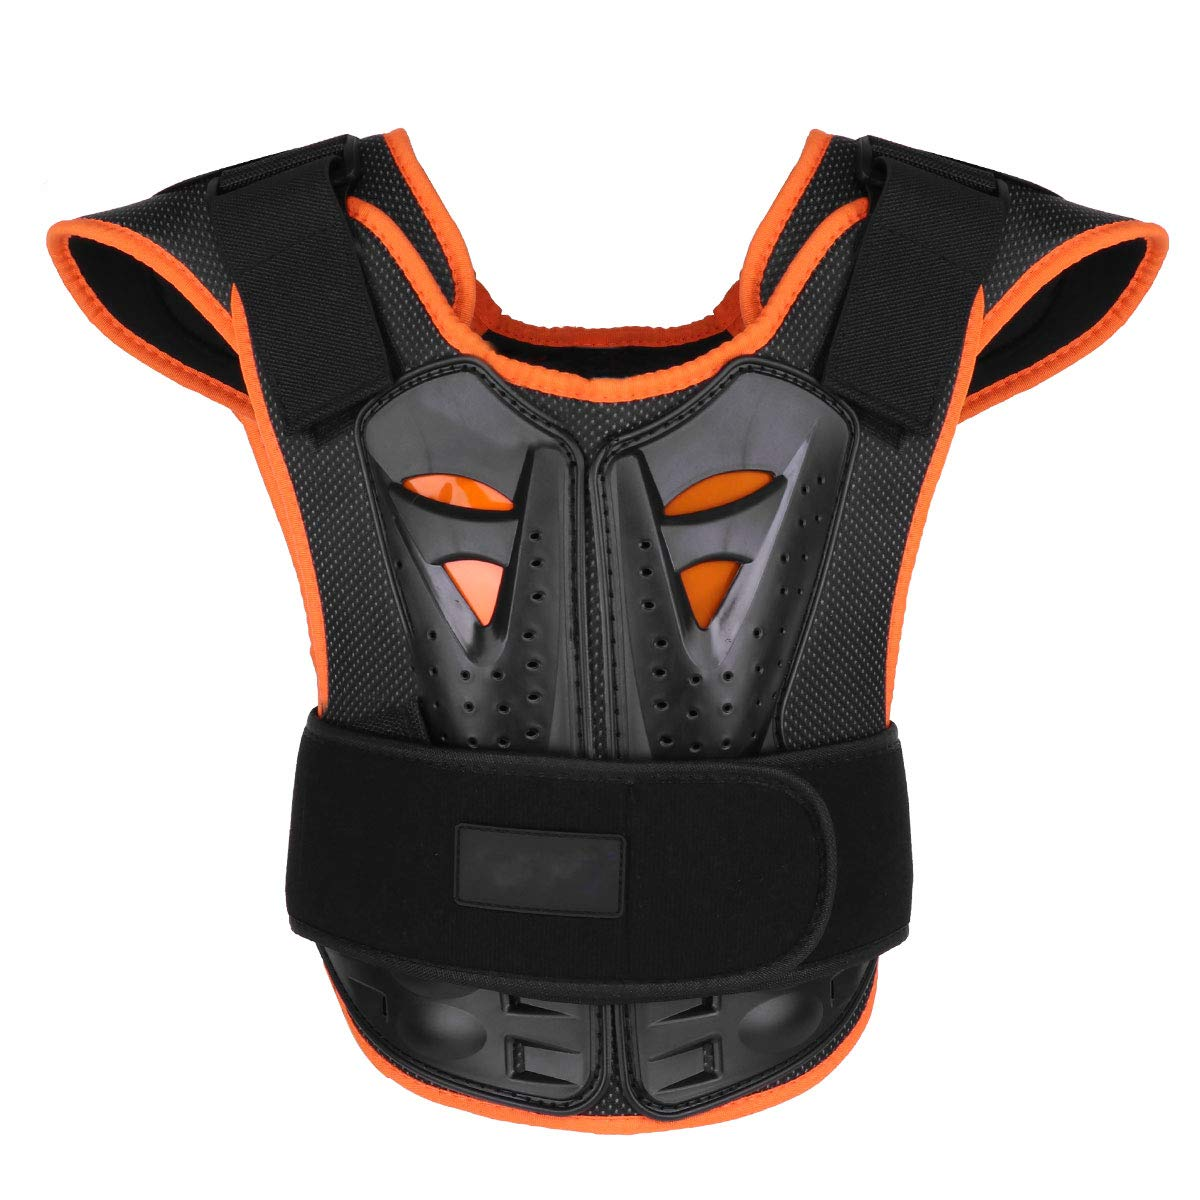 CHICTRY Kids Children Armor Vest Dirt Bike Body Chest Spine Reflective Protective Gear for Bicycle Motorcycle Cycling Skiing Riding Skateboarding Black L